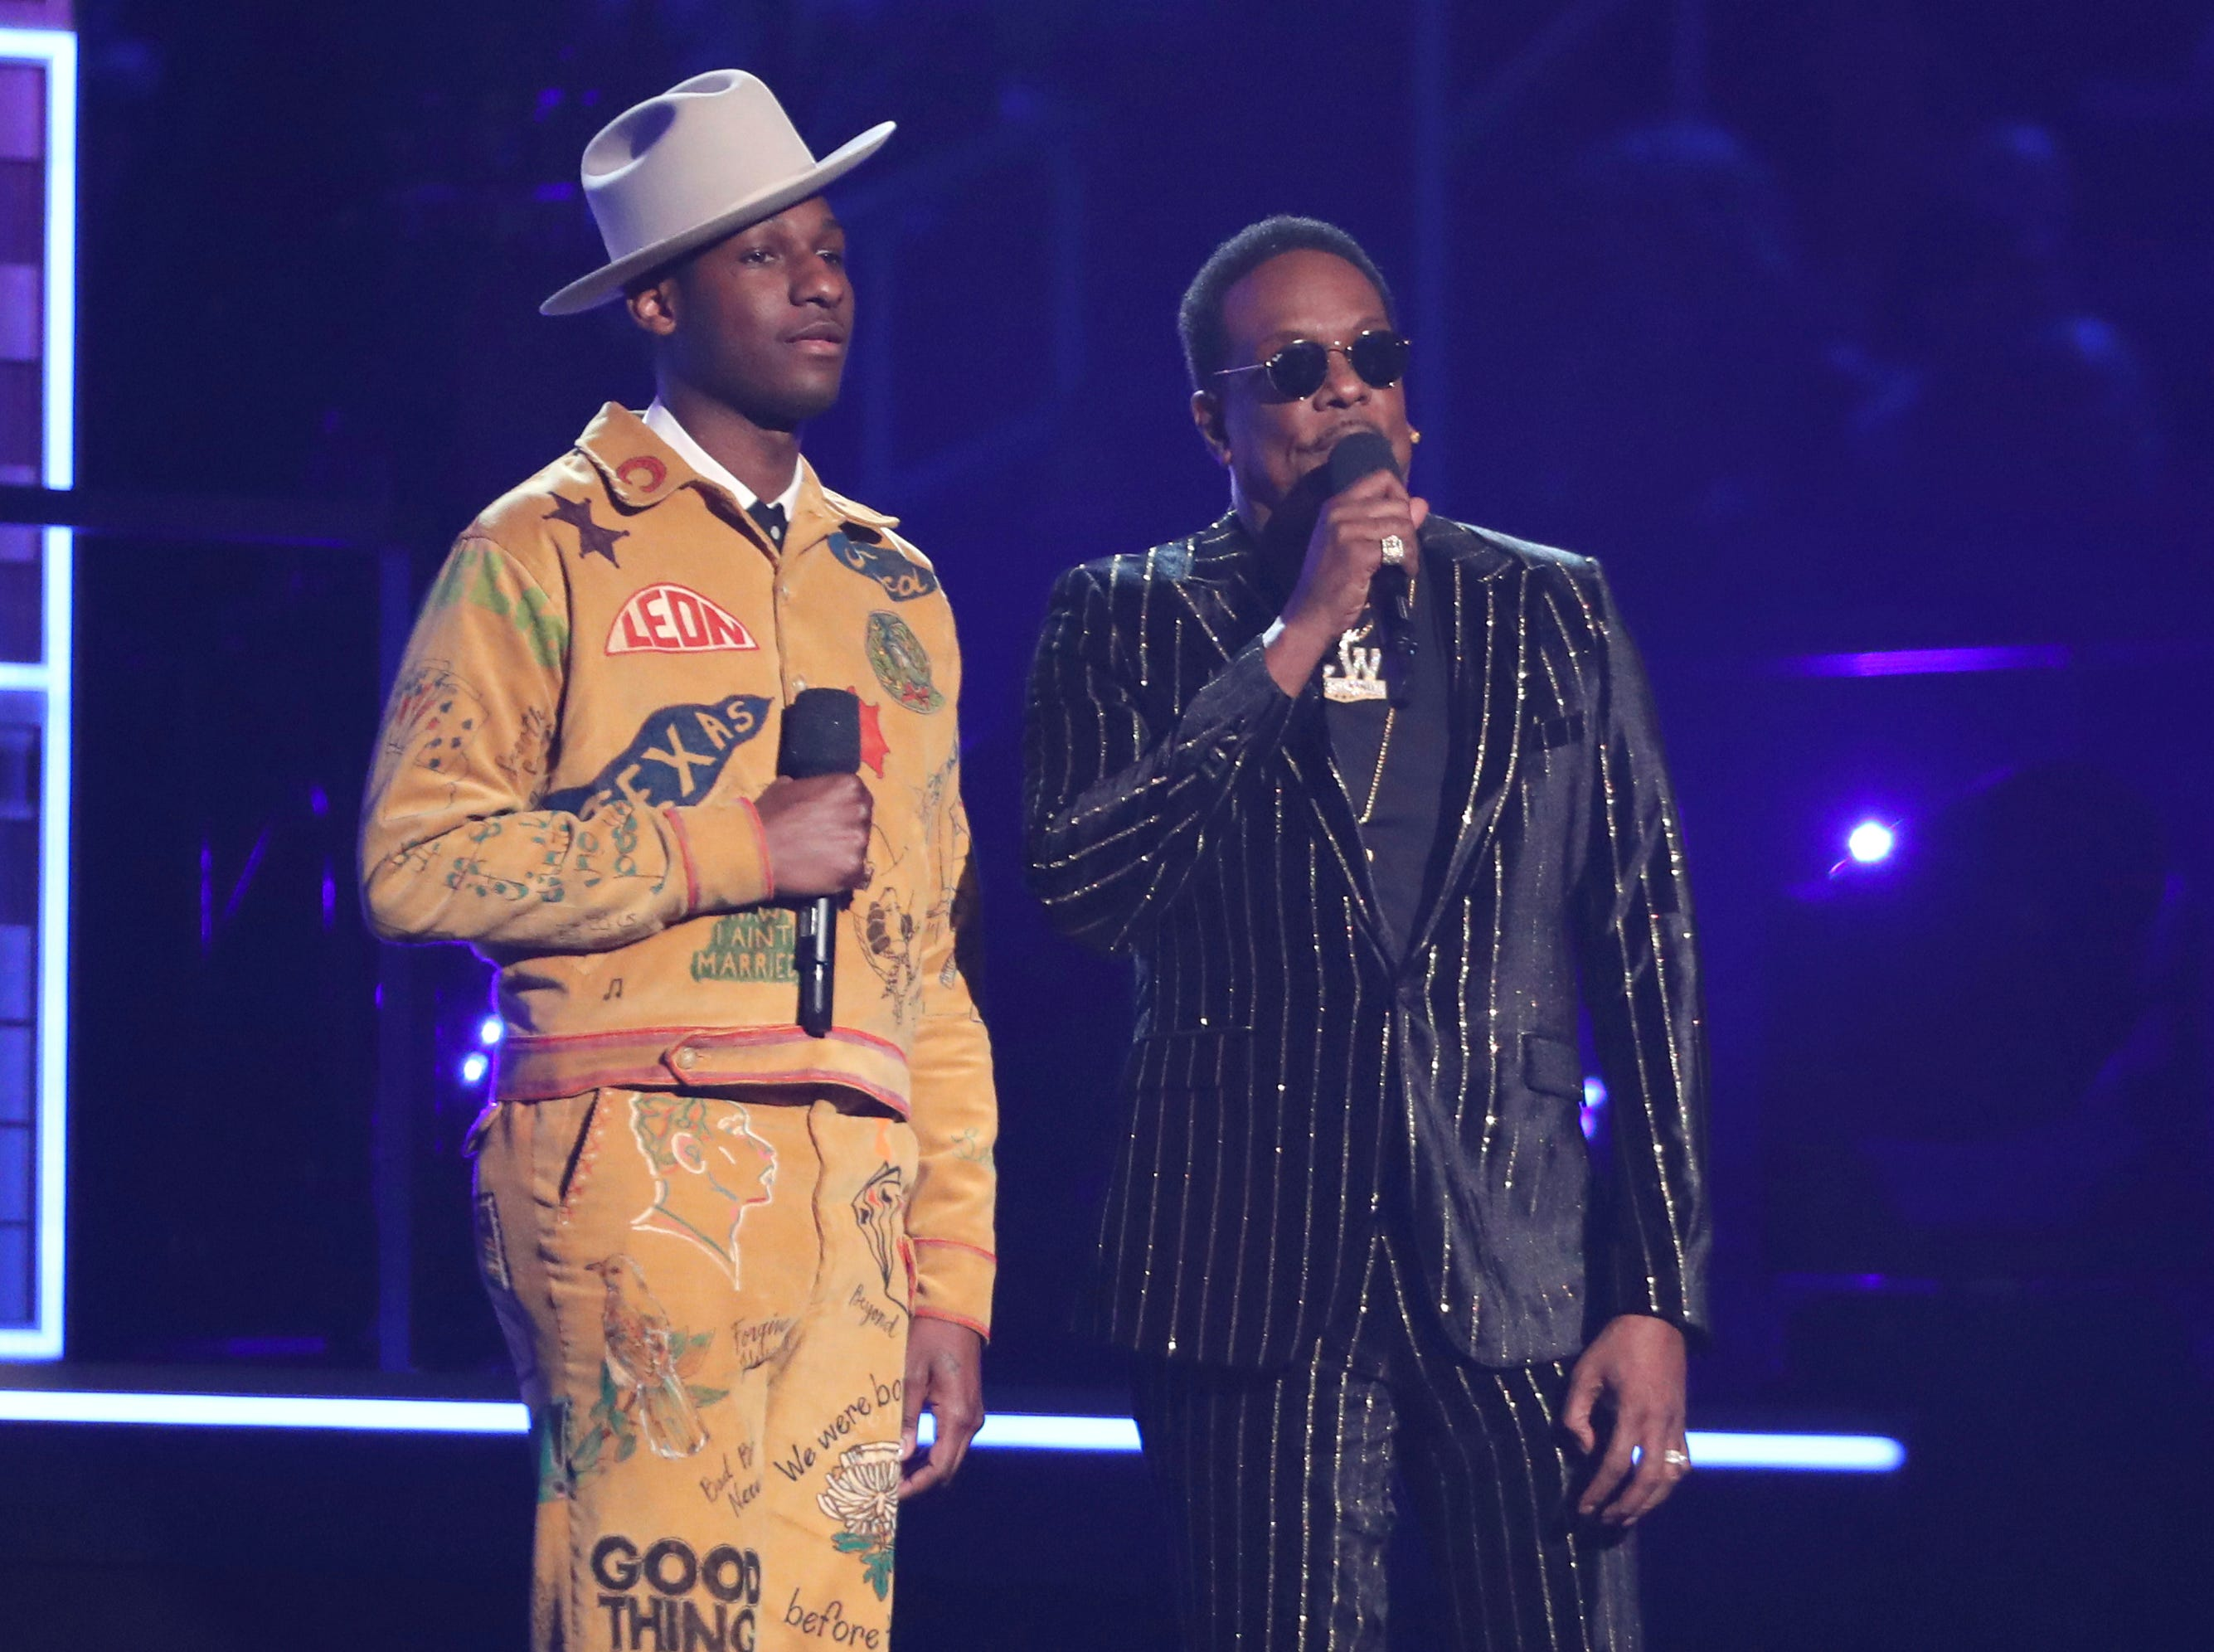 Leon Bridges, left, and Charlie Wilson introduce a performance at the 61st annual Grammy Awards.